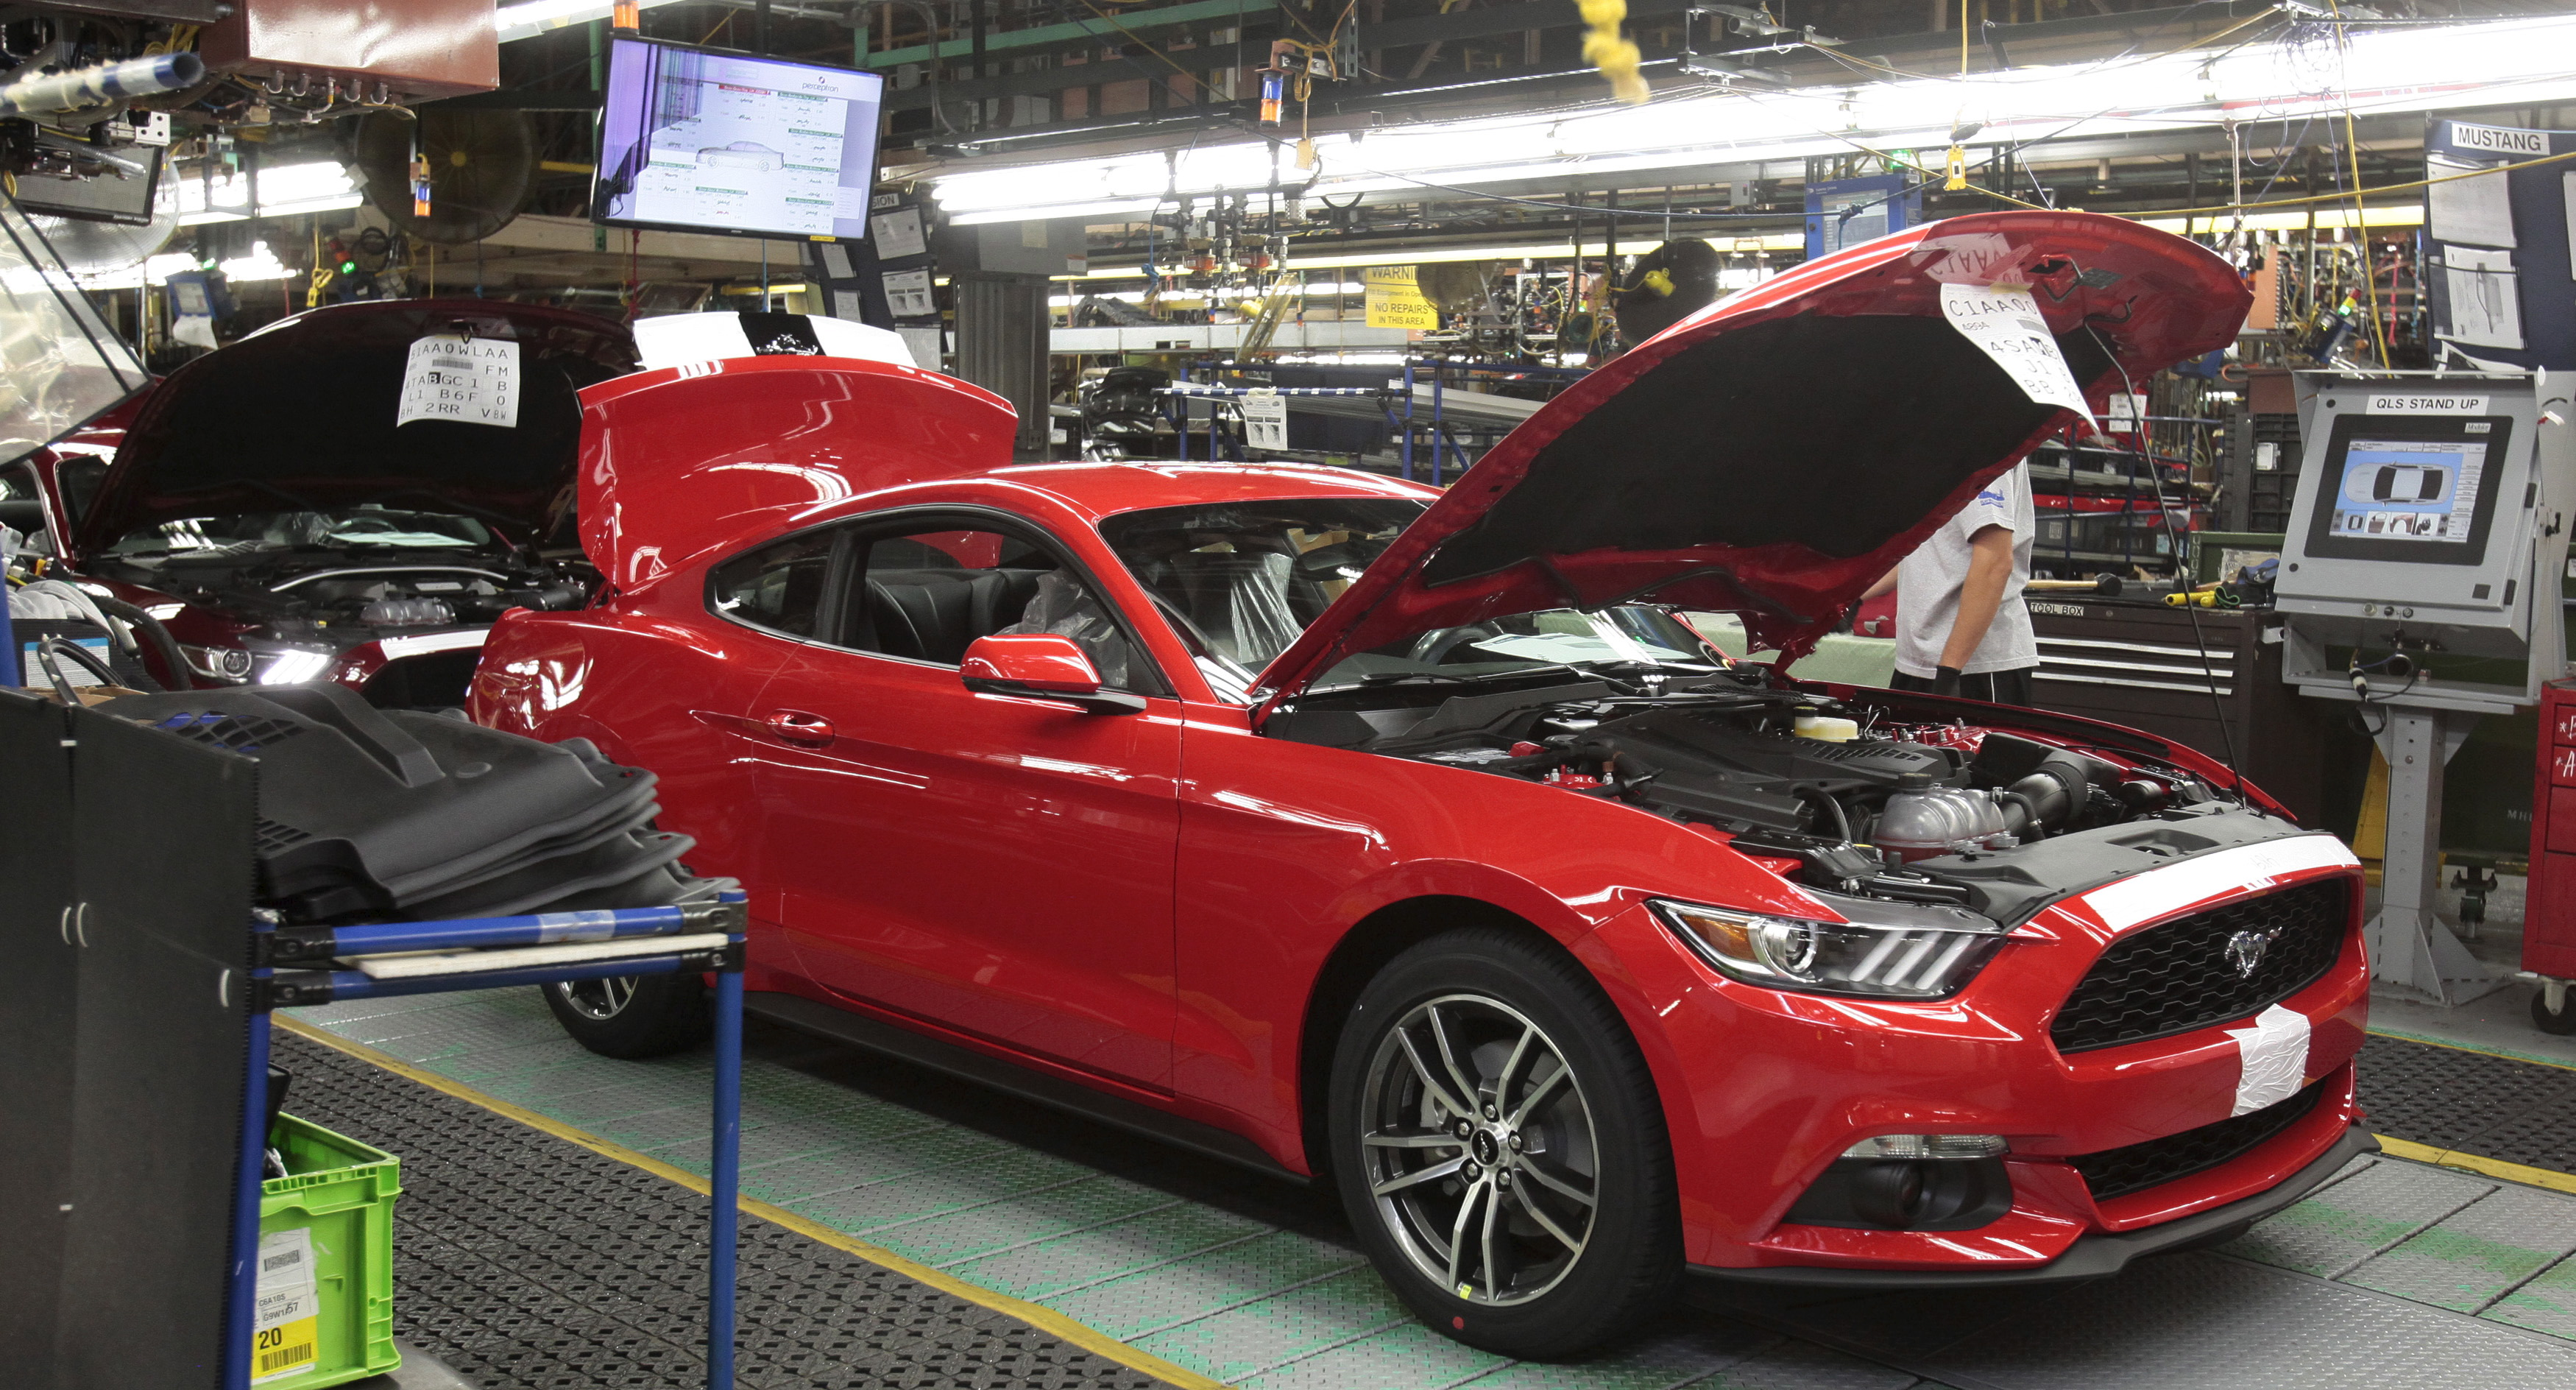 A 2015 Ford Mustang on the production line in Michigan. REUTERS/Rebecca Cook